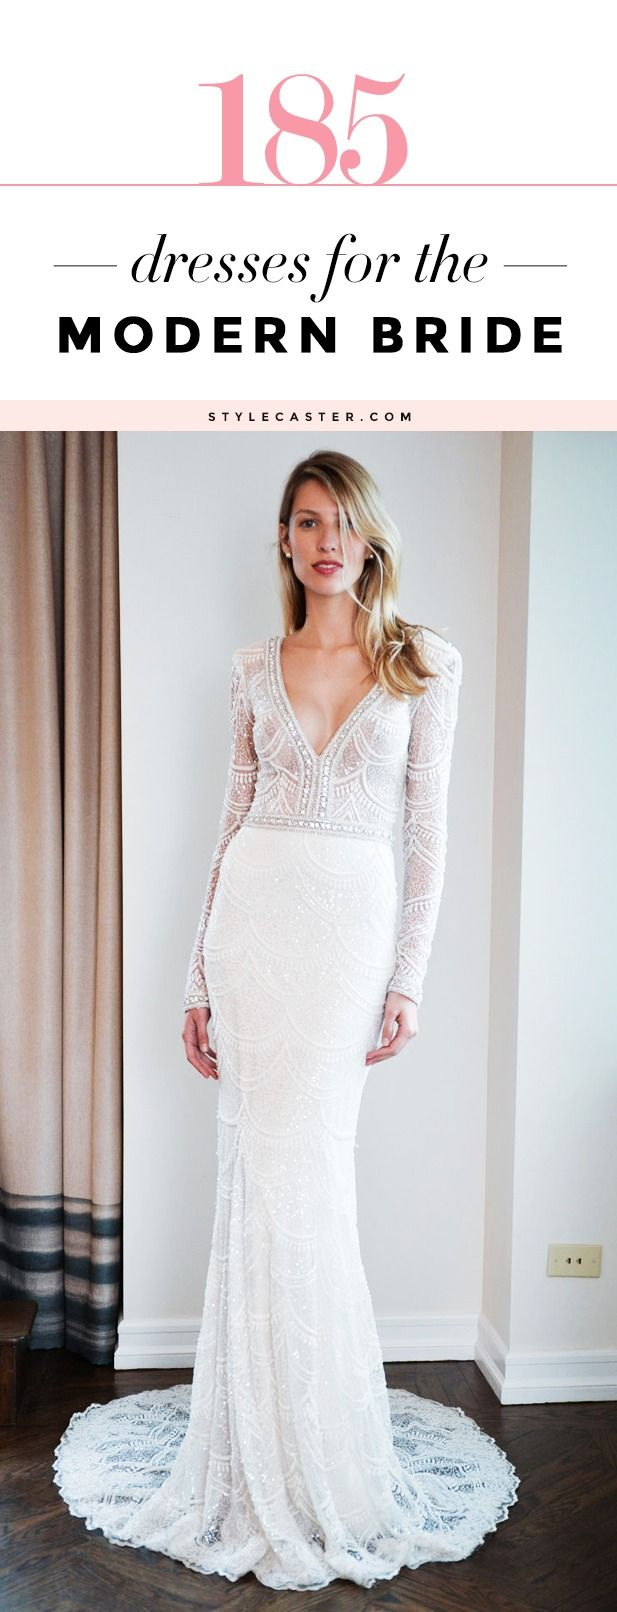 Wedding Dress Handbook: 185 Modern Bridal Looks - This amazing gallery of long-sleeve, backless, short, beaded, boxy, bodycon, and minimalist wedding ensembles (including pants, and skirts) is the ultimate inspiration for any modern bride.